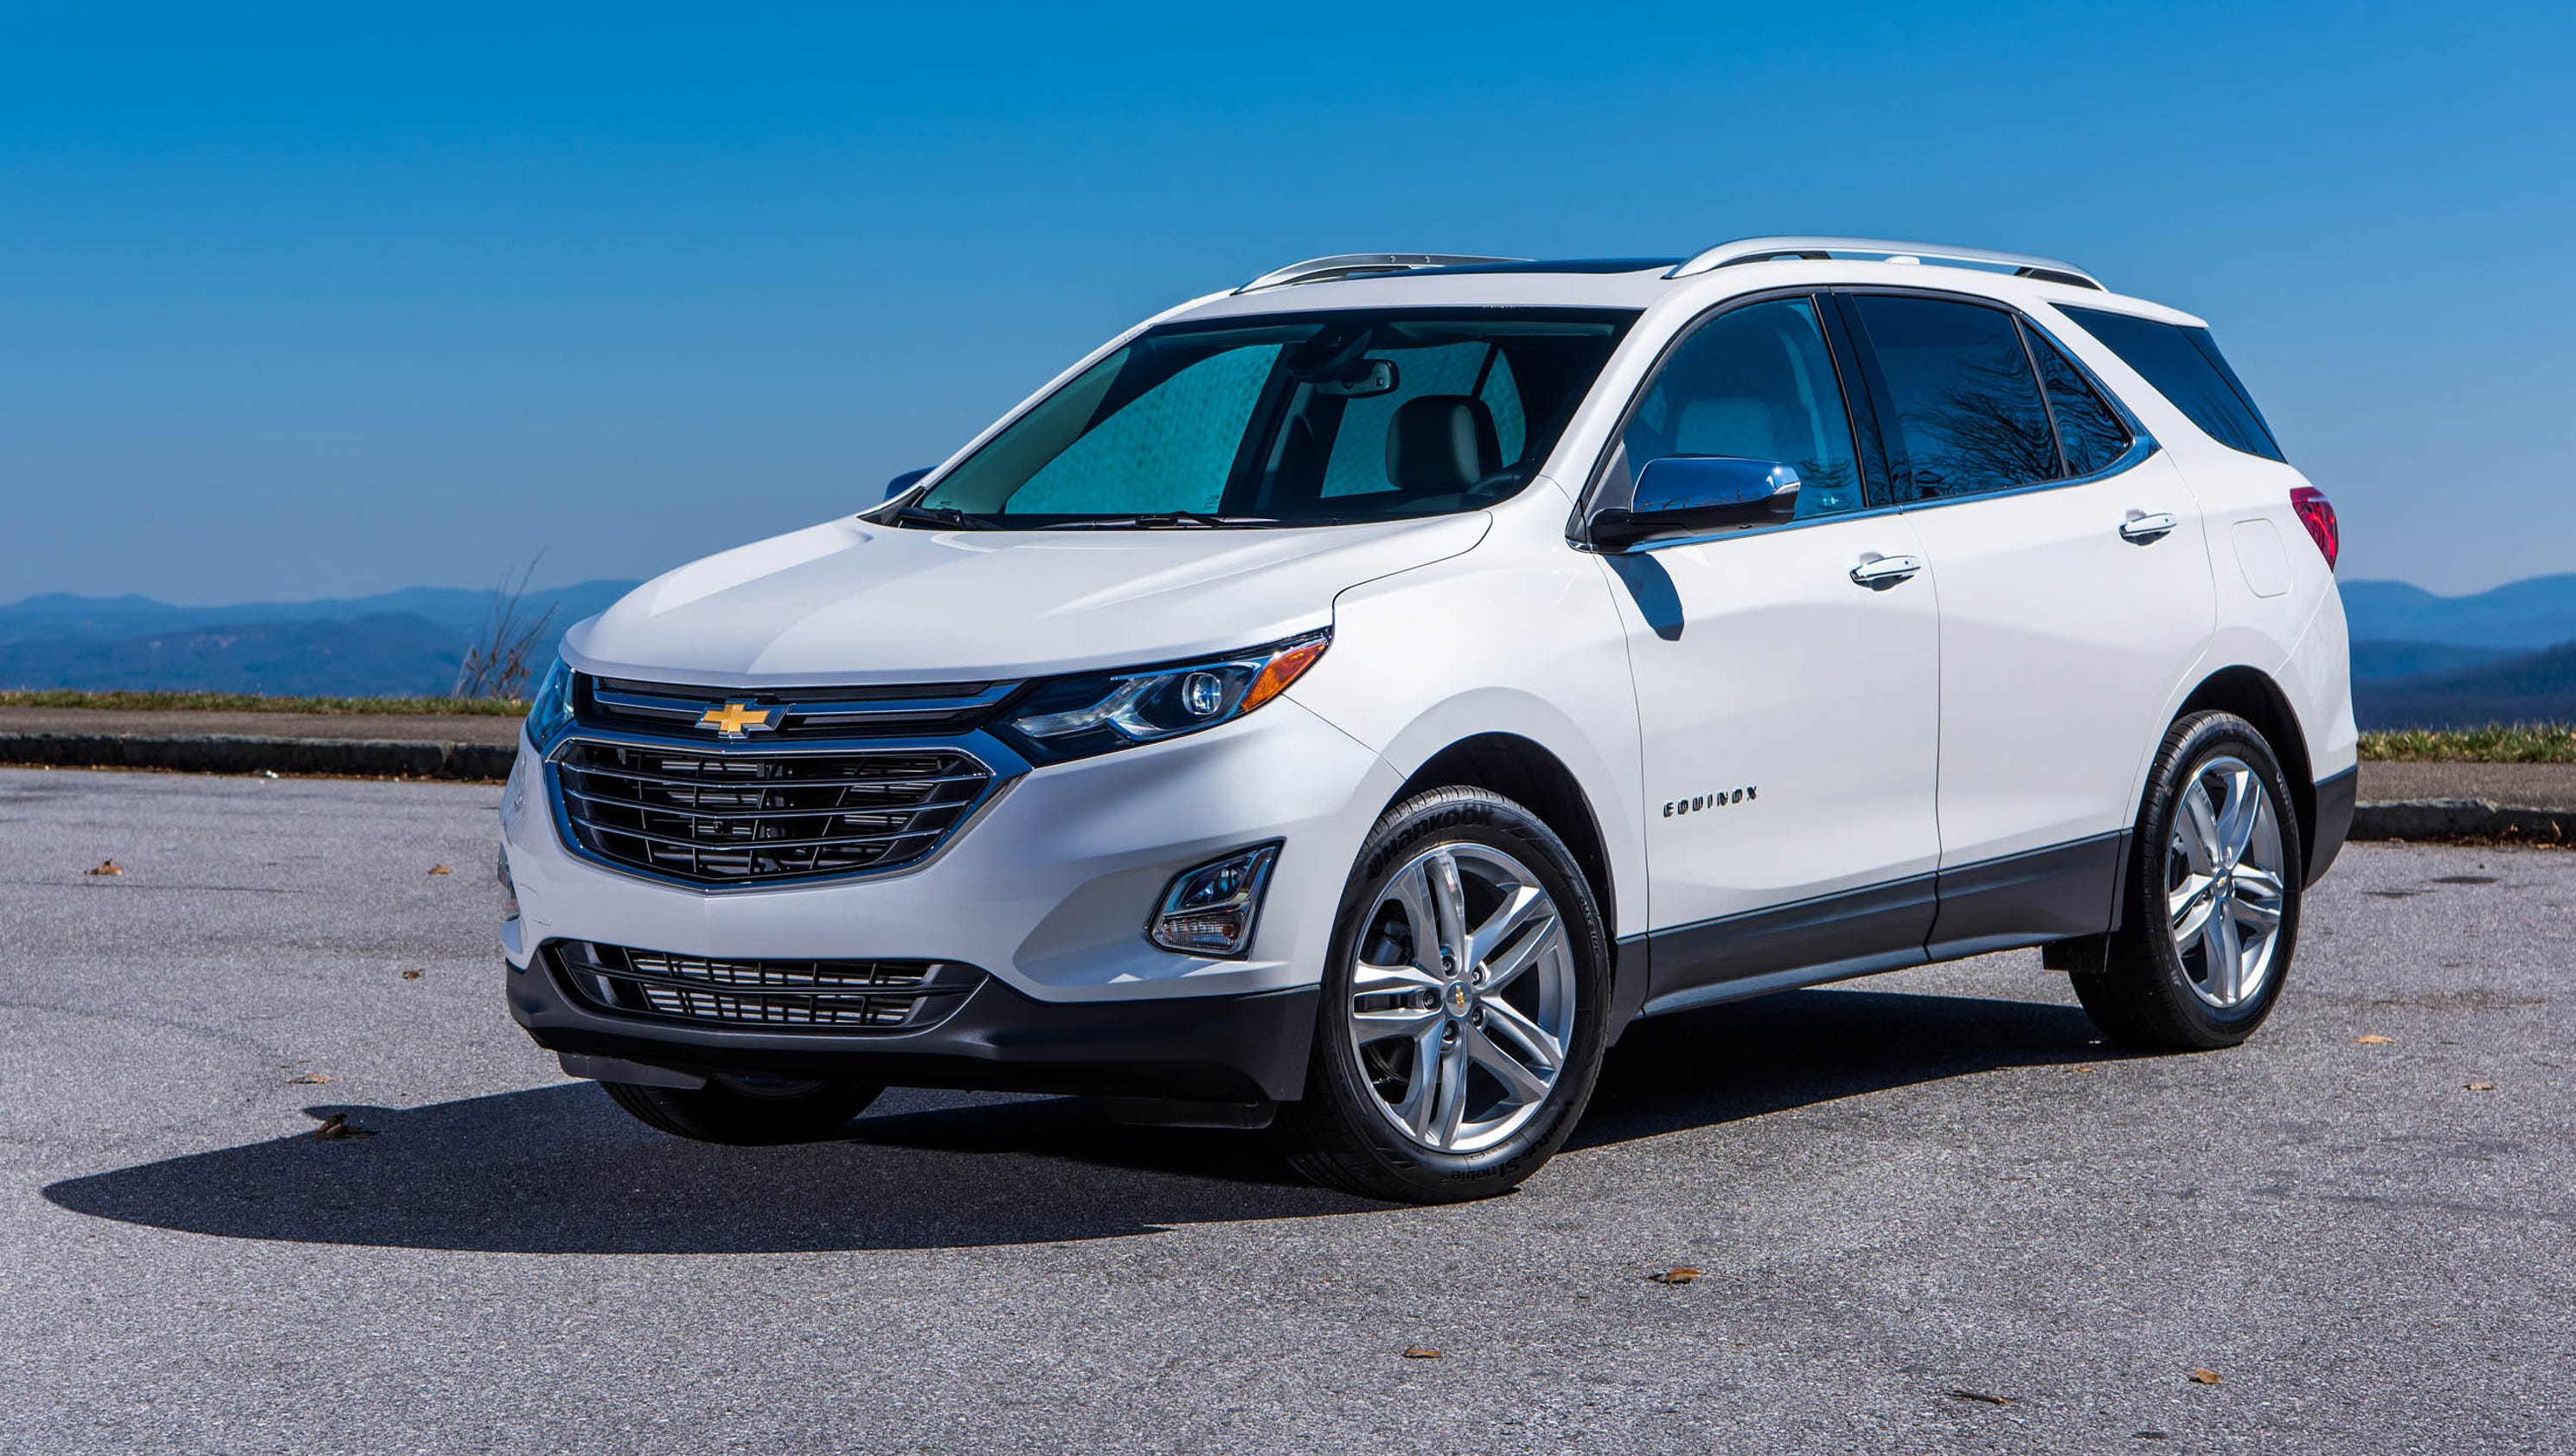 Review: 2018 Chevrolet Equinox proves less is more